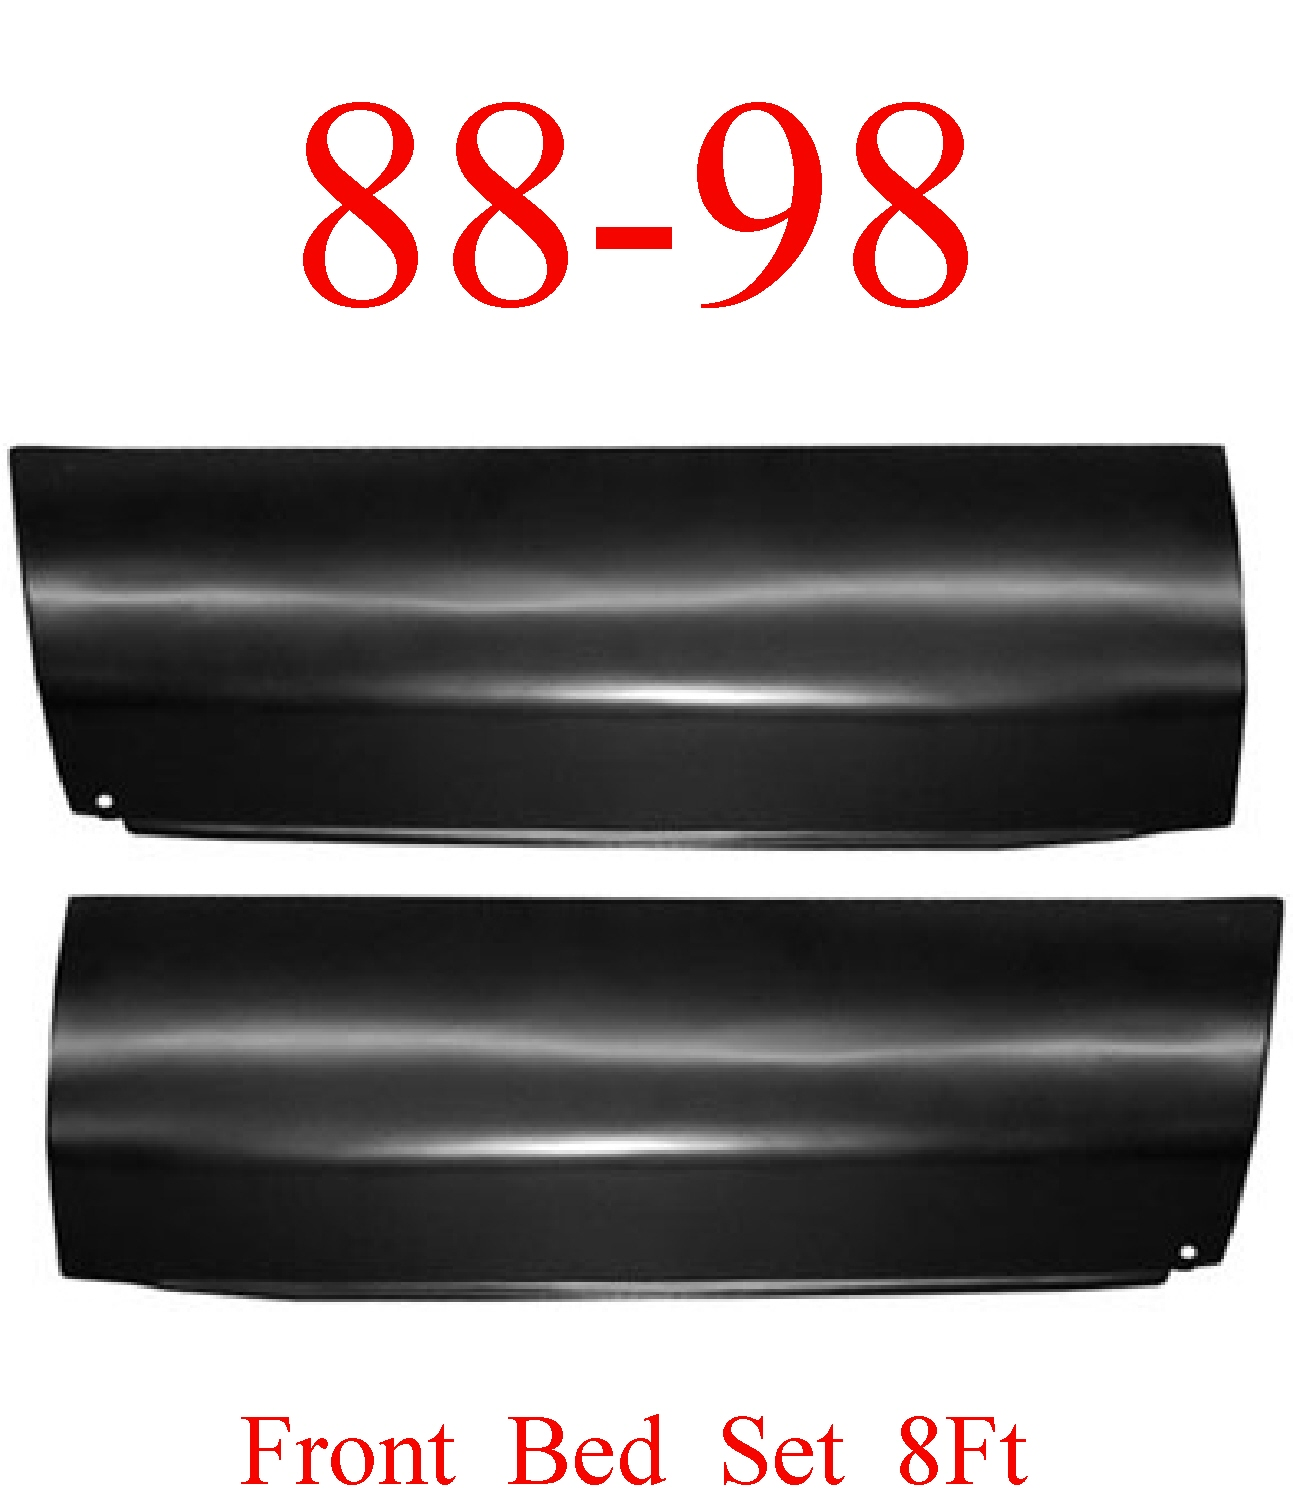 88-98 Chevy 8' Left Front Lower Bed Panel Set, GMC Truck